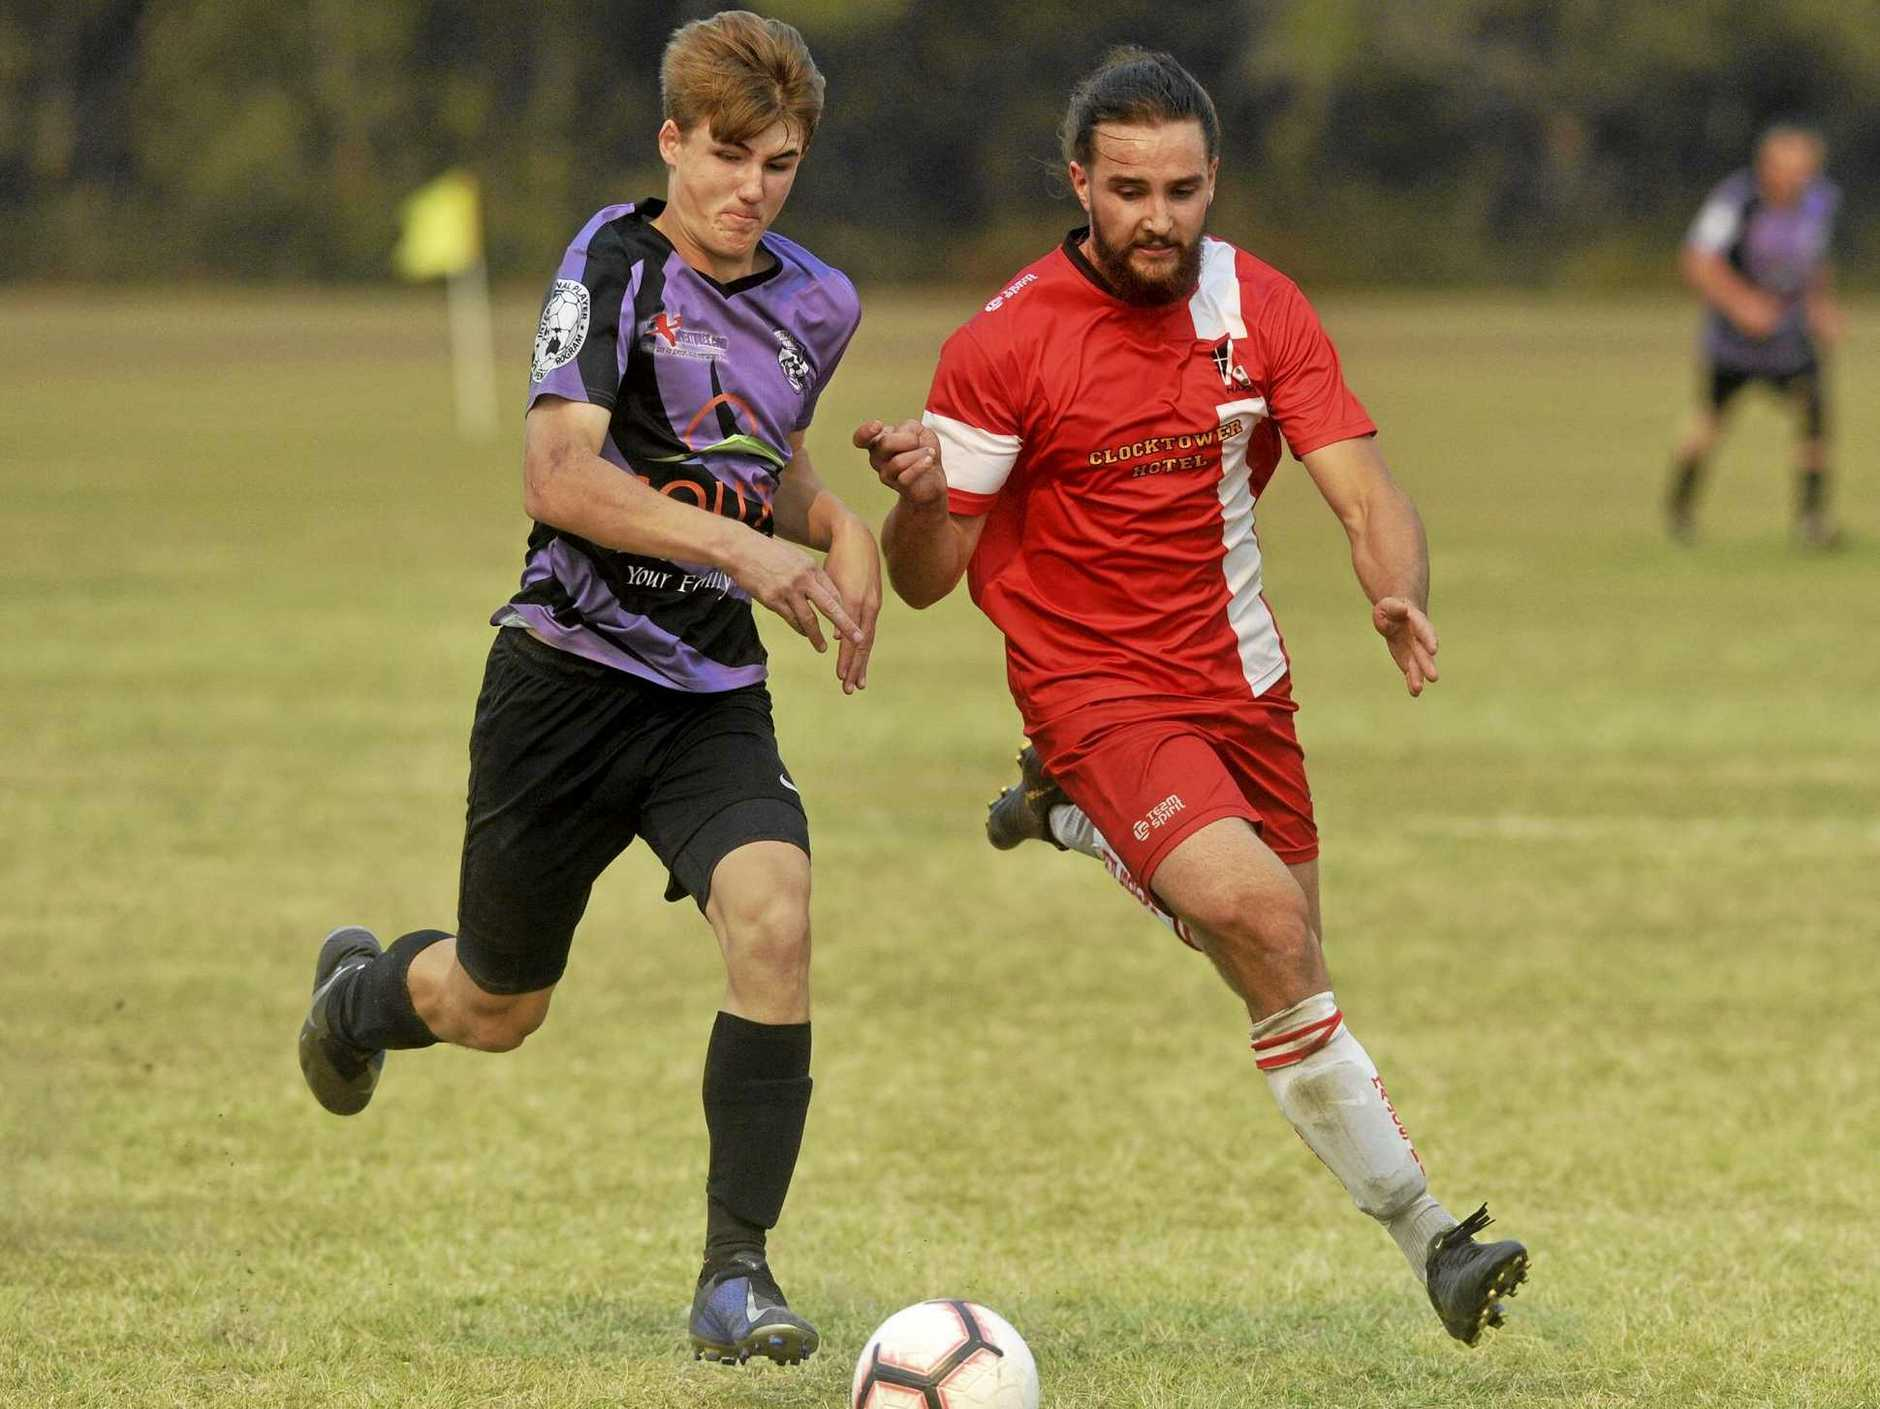 Majos' Braydan Jones takes on Grafton's Bailey Bathgate in the Men's Division 2 North grand final between Grafton United Sirens and Majos FC White at Yamba on Saturday.